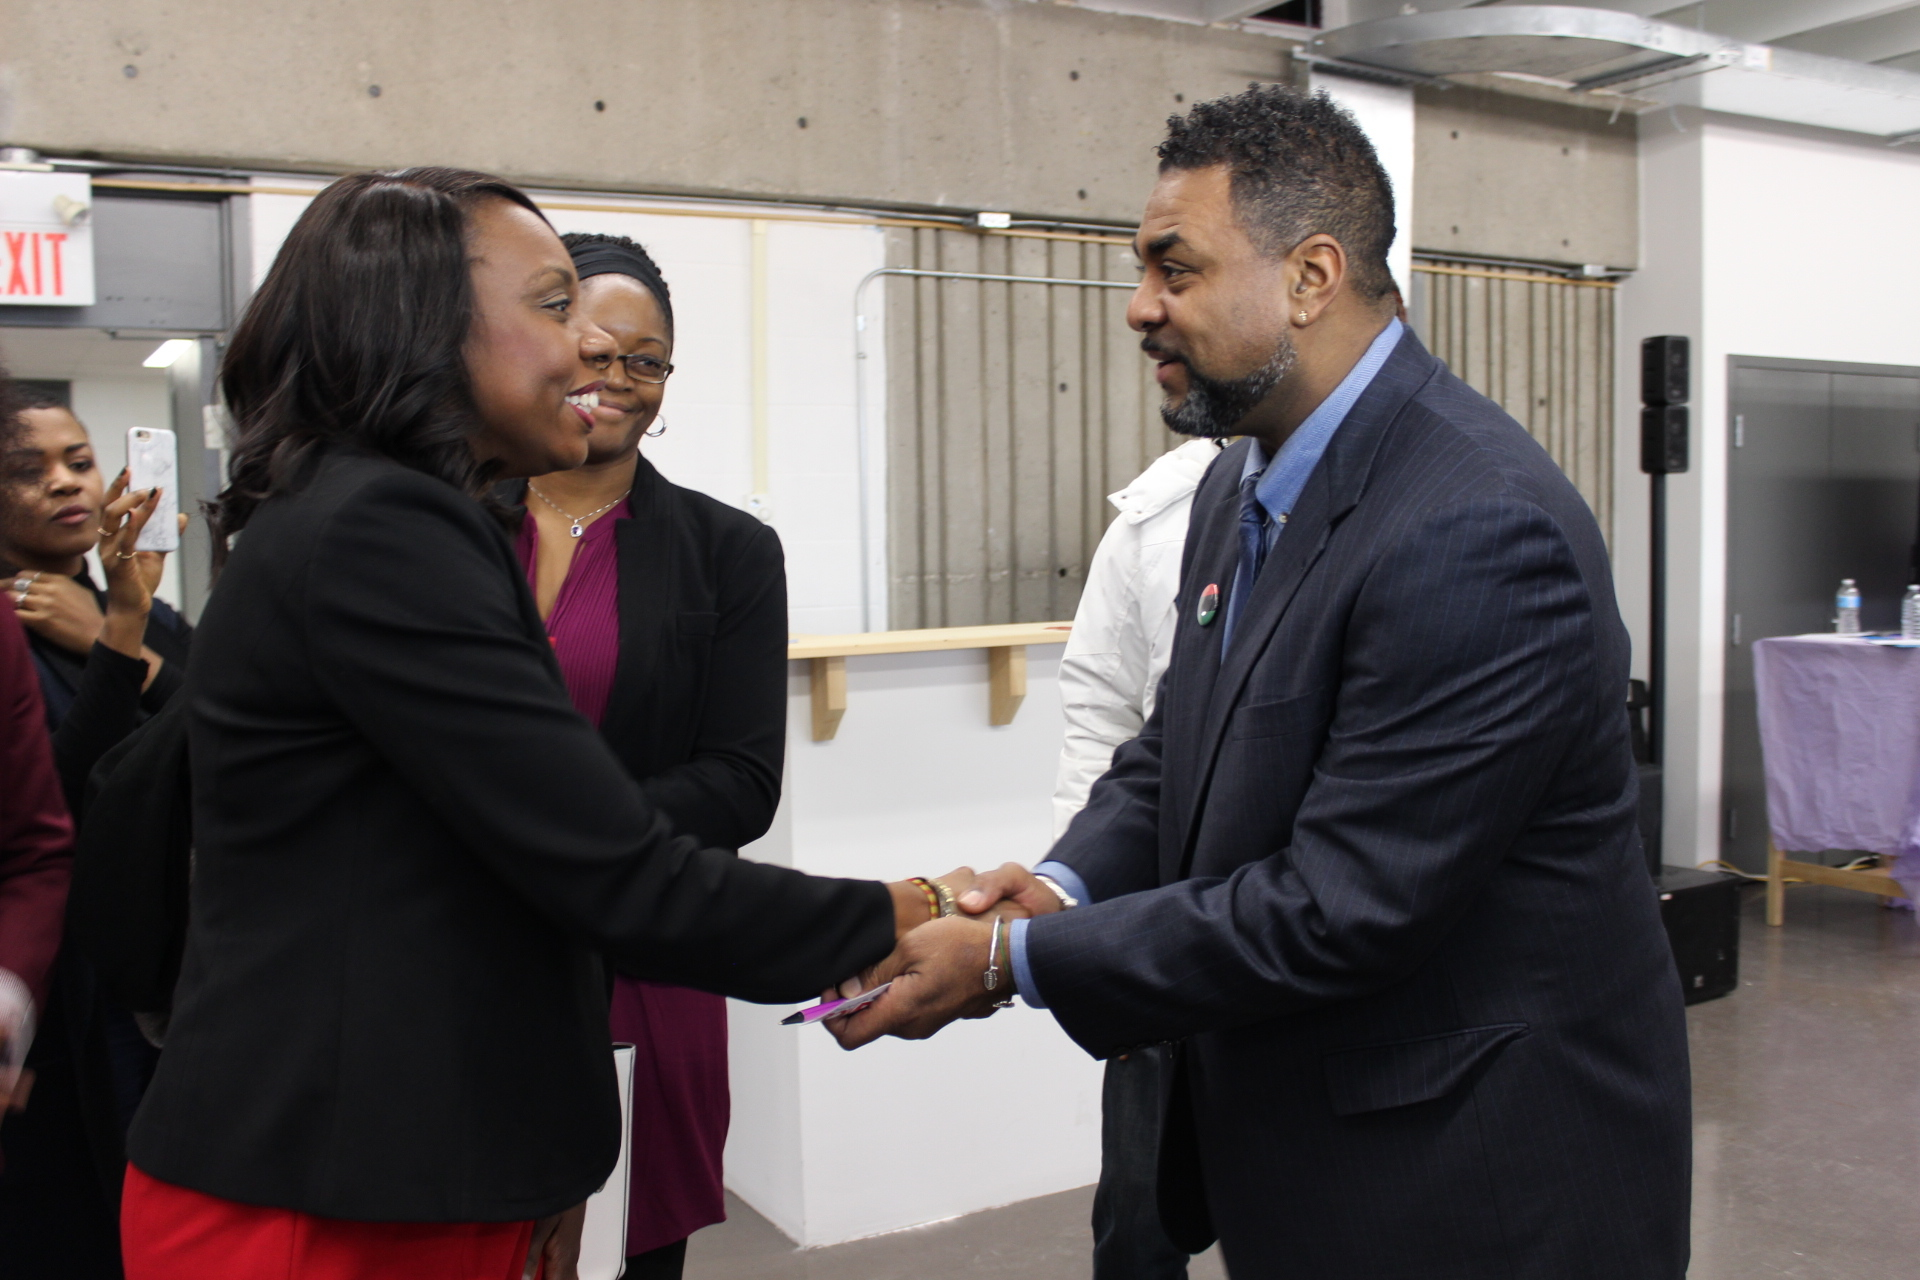 Minister of Education, Mitzie Hunter, and C5 Director, Dewitt Lee, at the public launching of C5